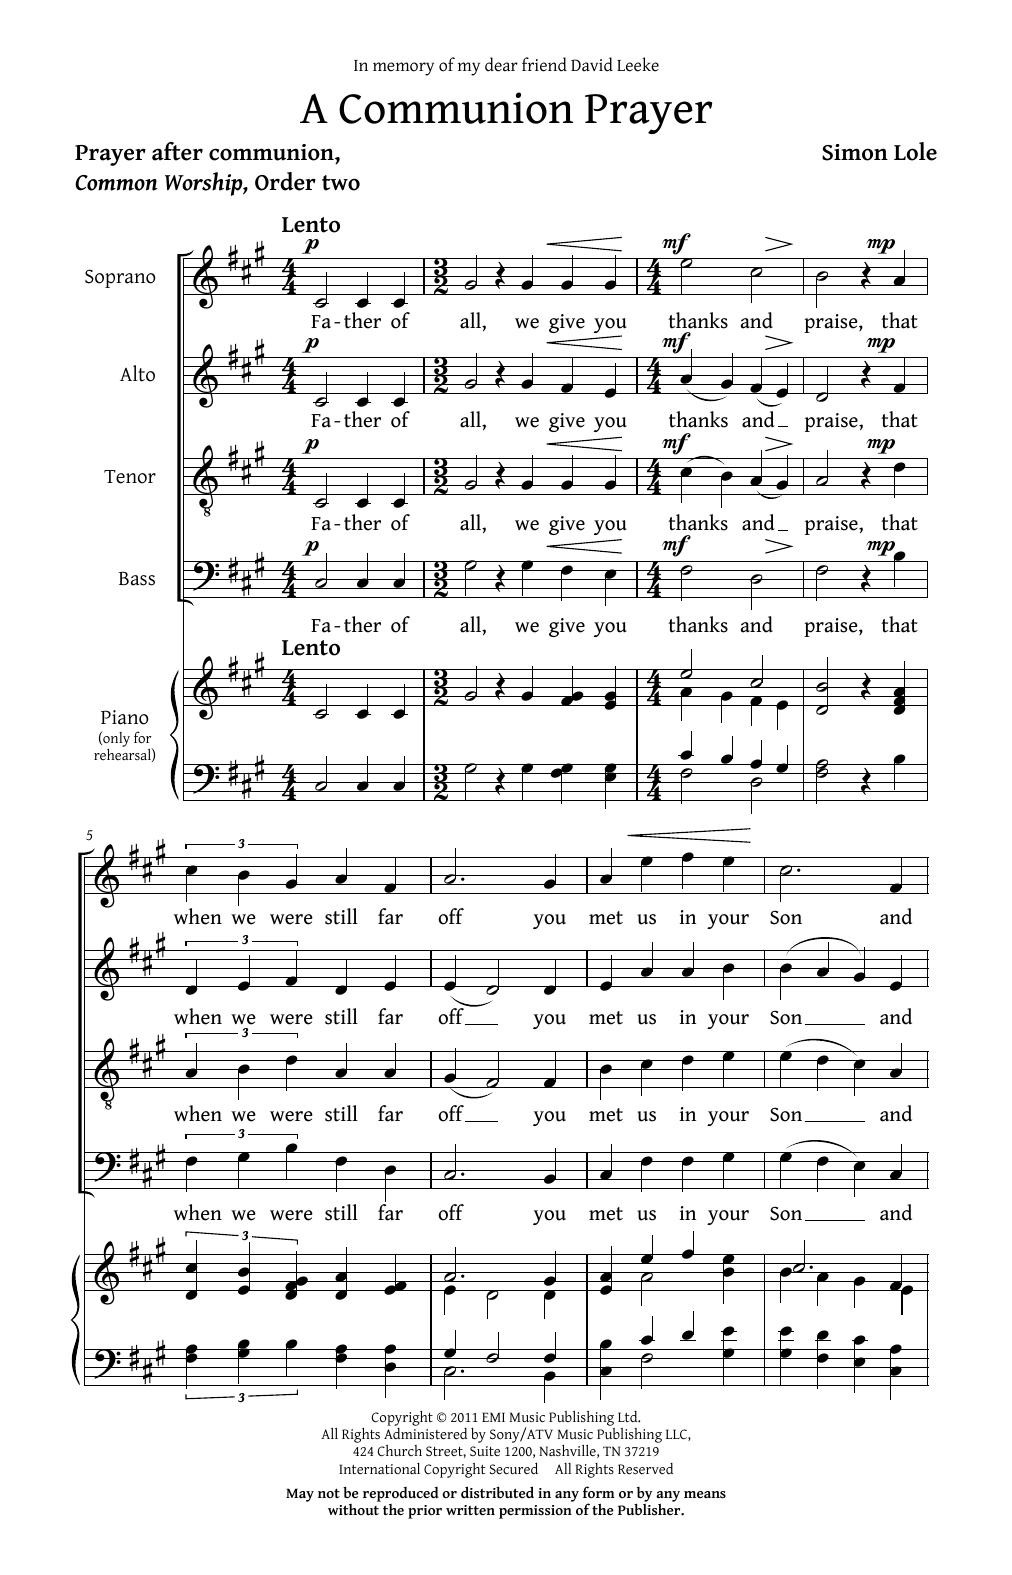 Simon Lole A Communion Prayer sheet music notes and chords